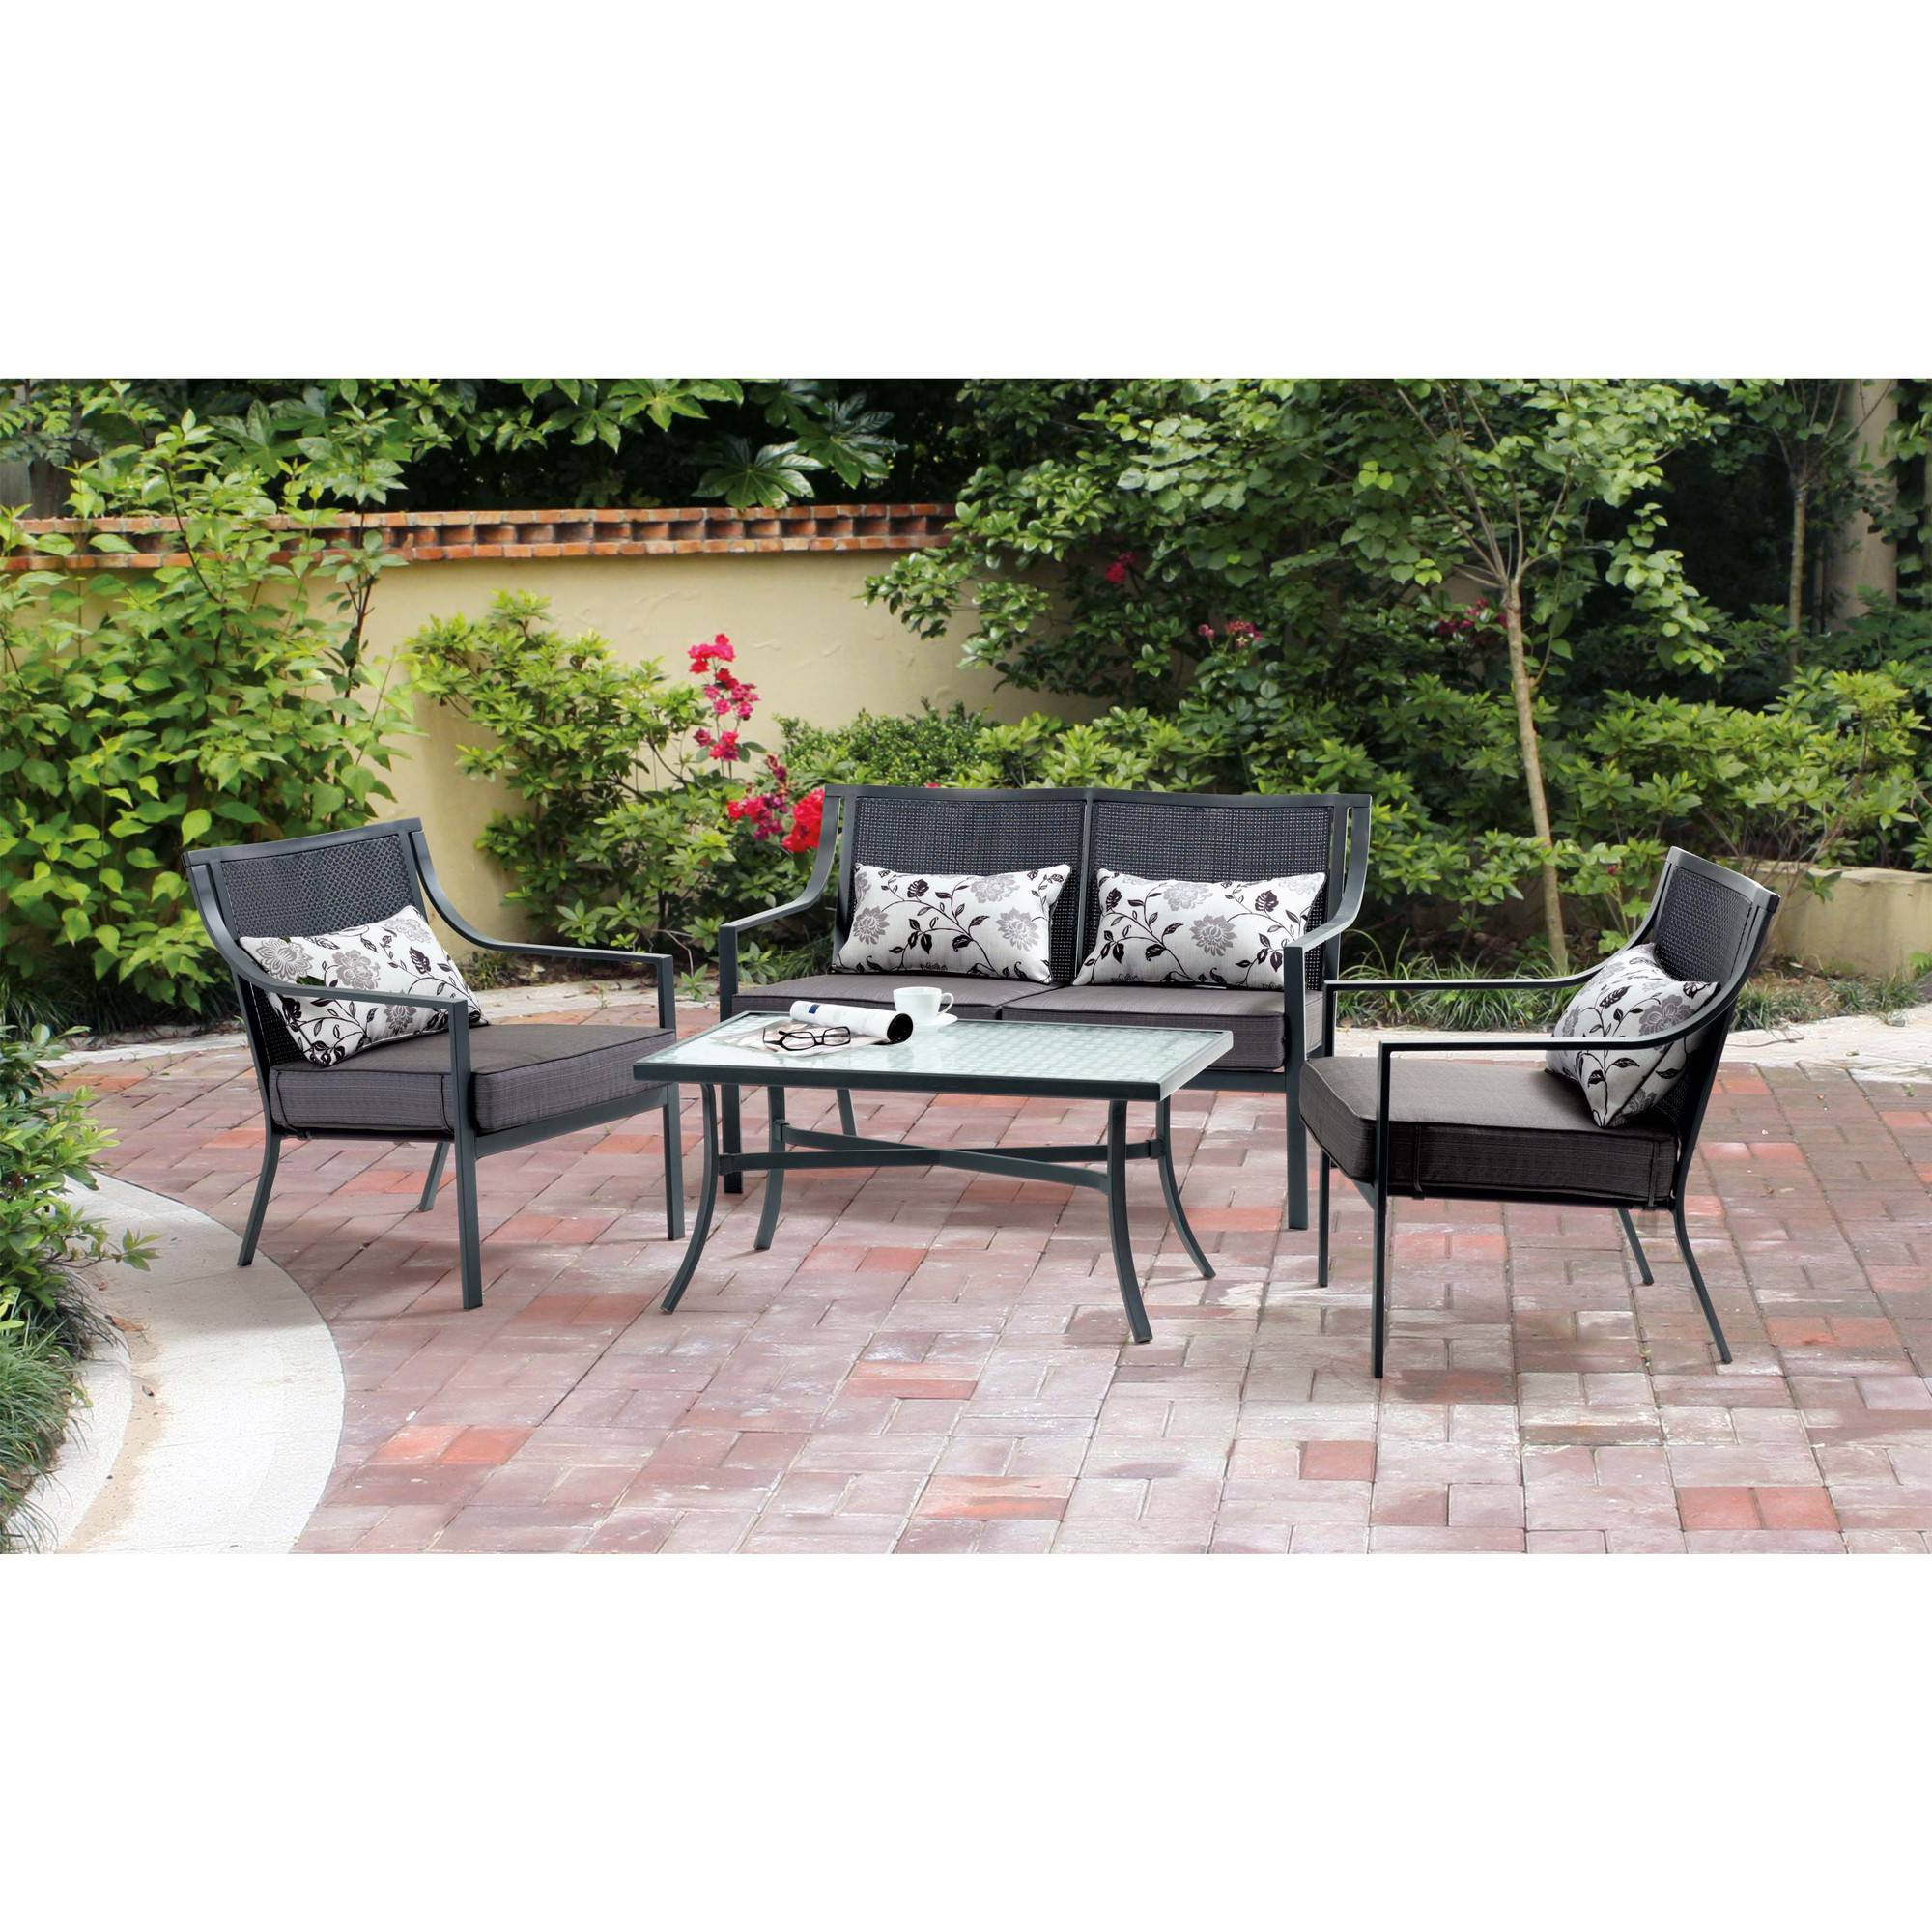 Mainstays Alexandra Square 4 Piece Patio Conversation Set, Grey With  Leaves, Seats 4   Walmart.com